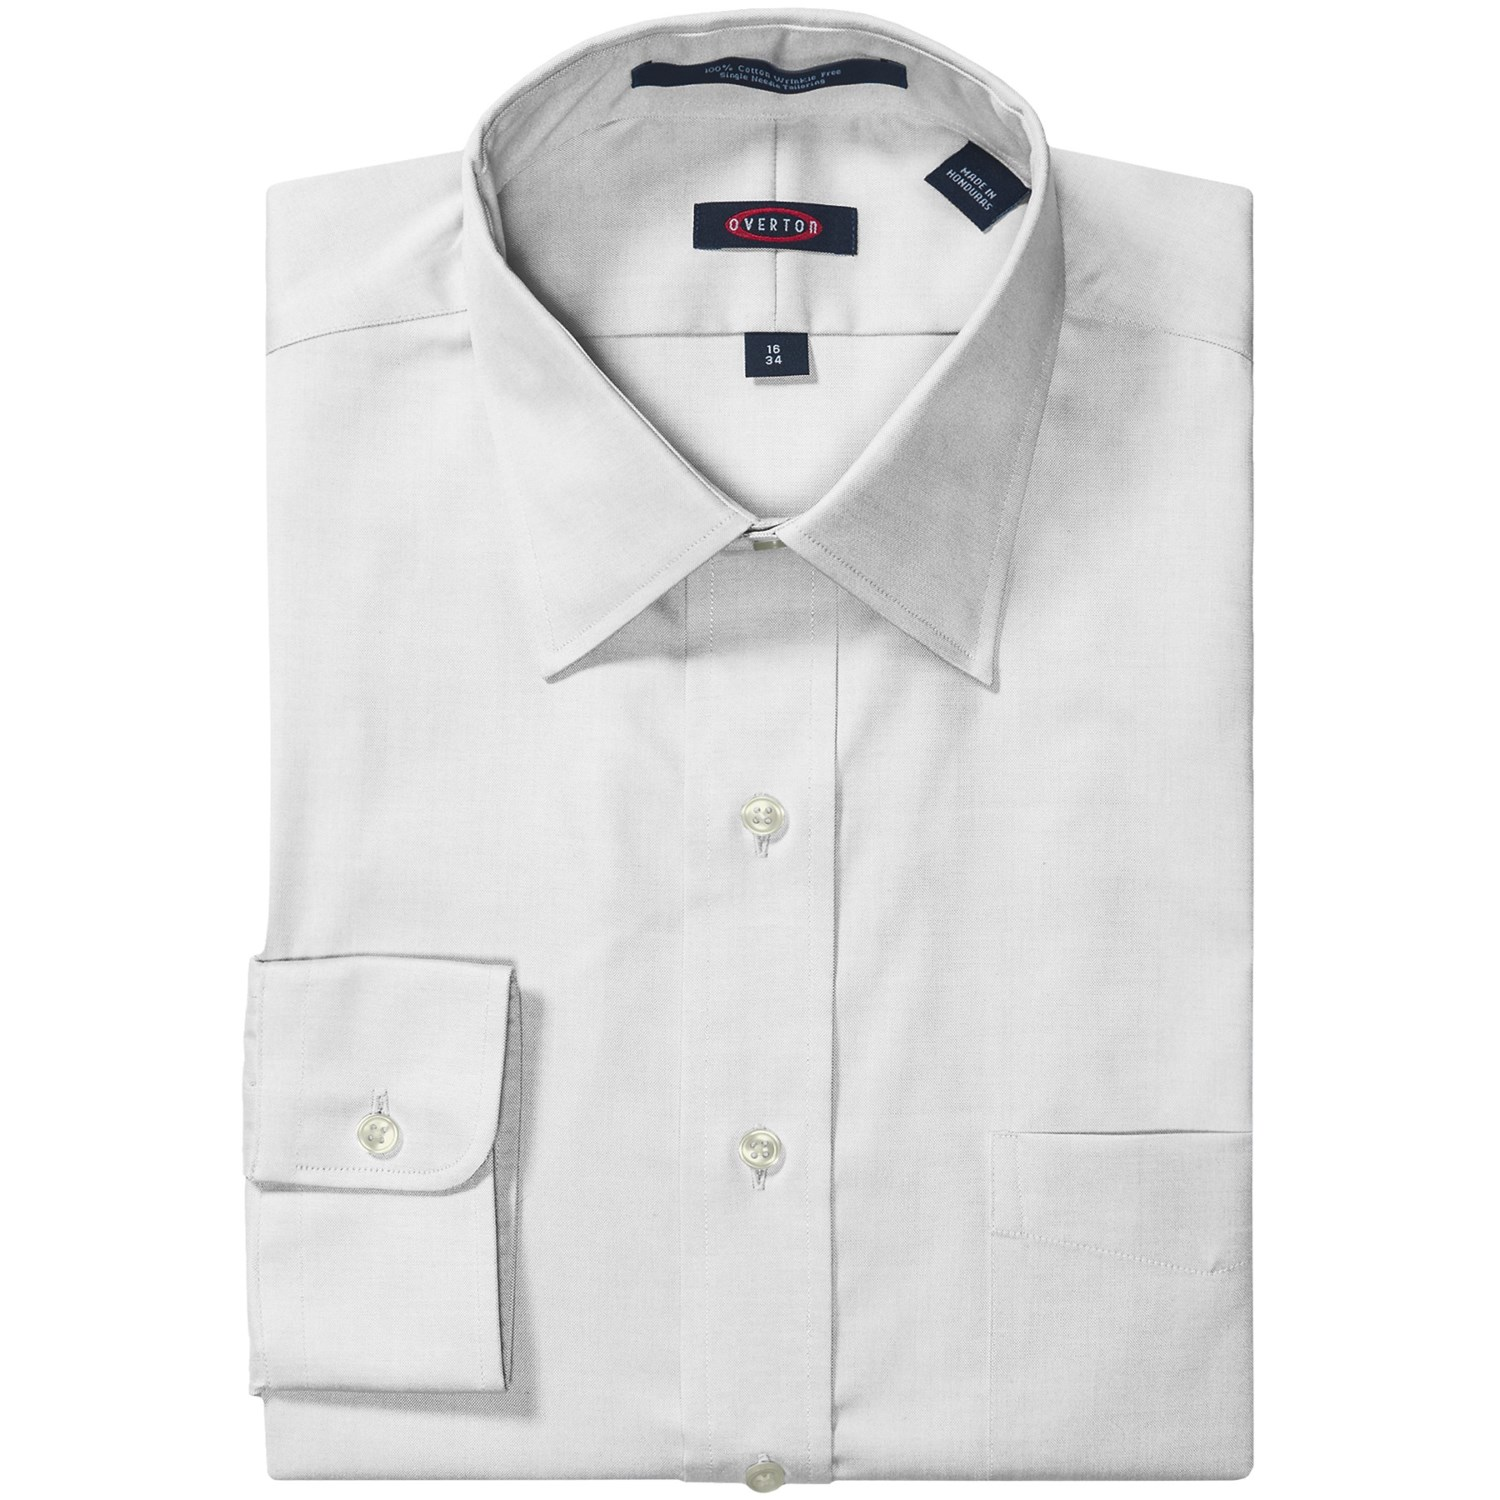 Overton Wrinkle Free Pinpoint Cotton Shirt Long Sleeve